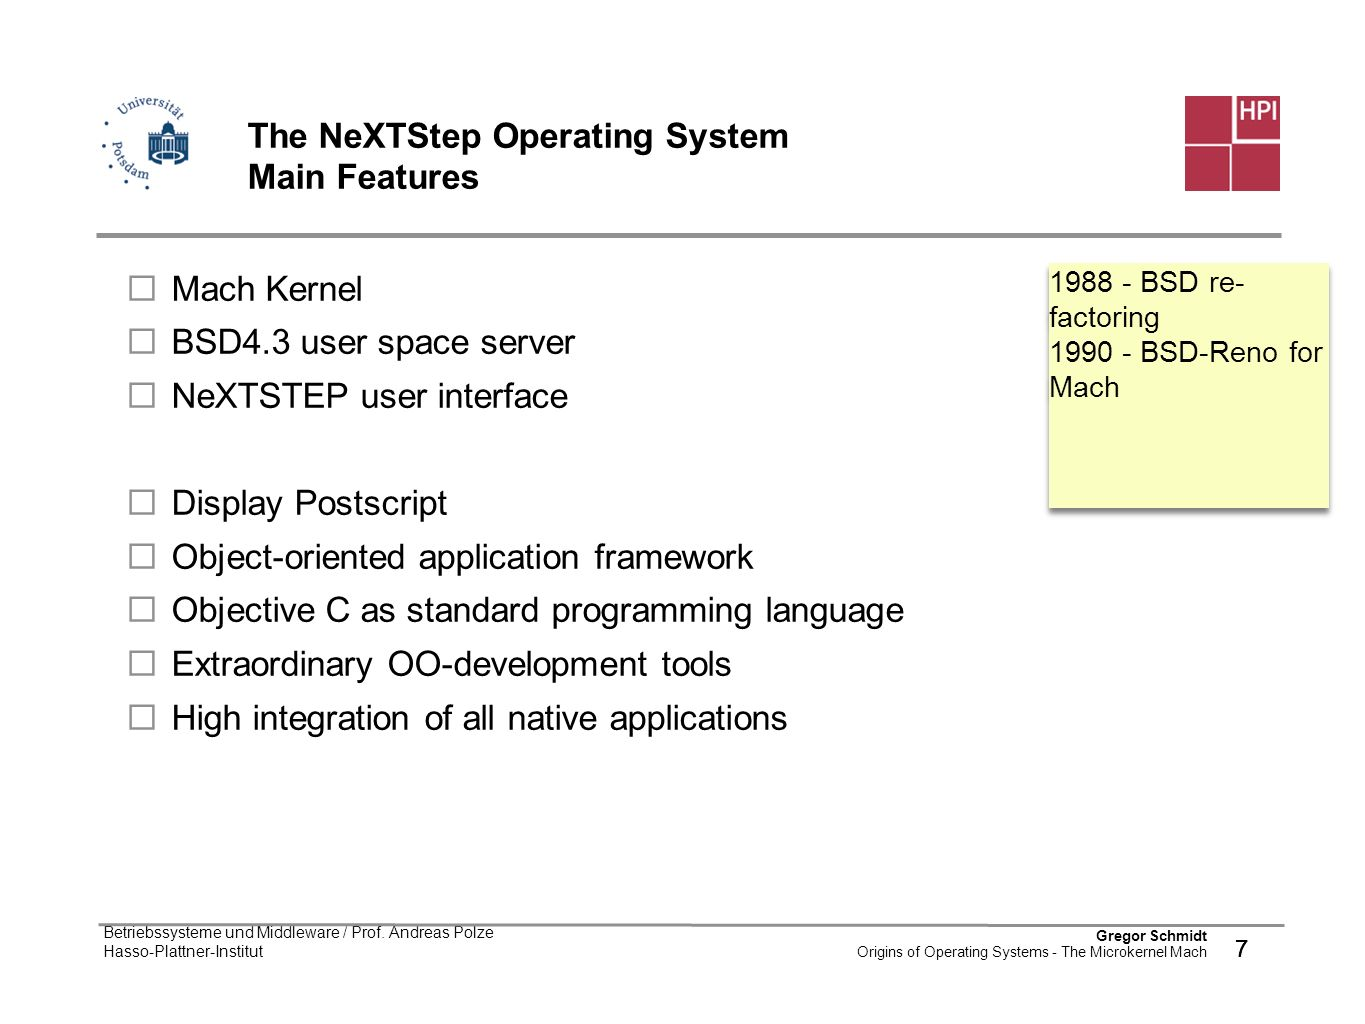 The NeXTStep Operating System Main Features